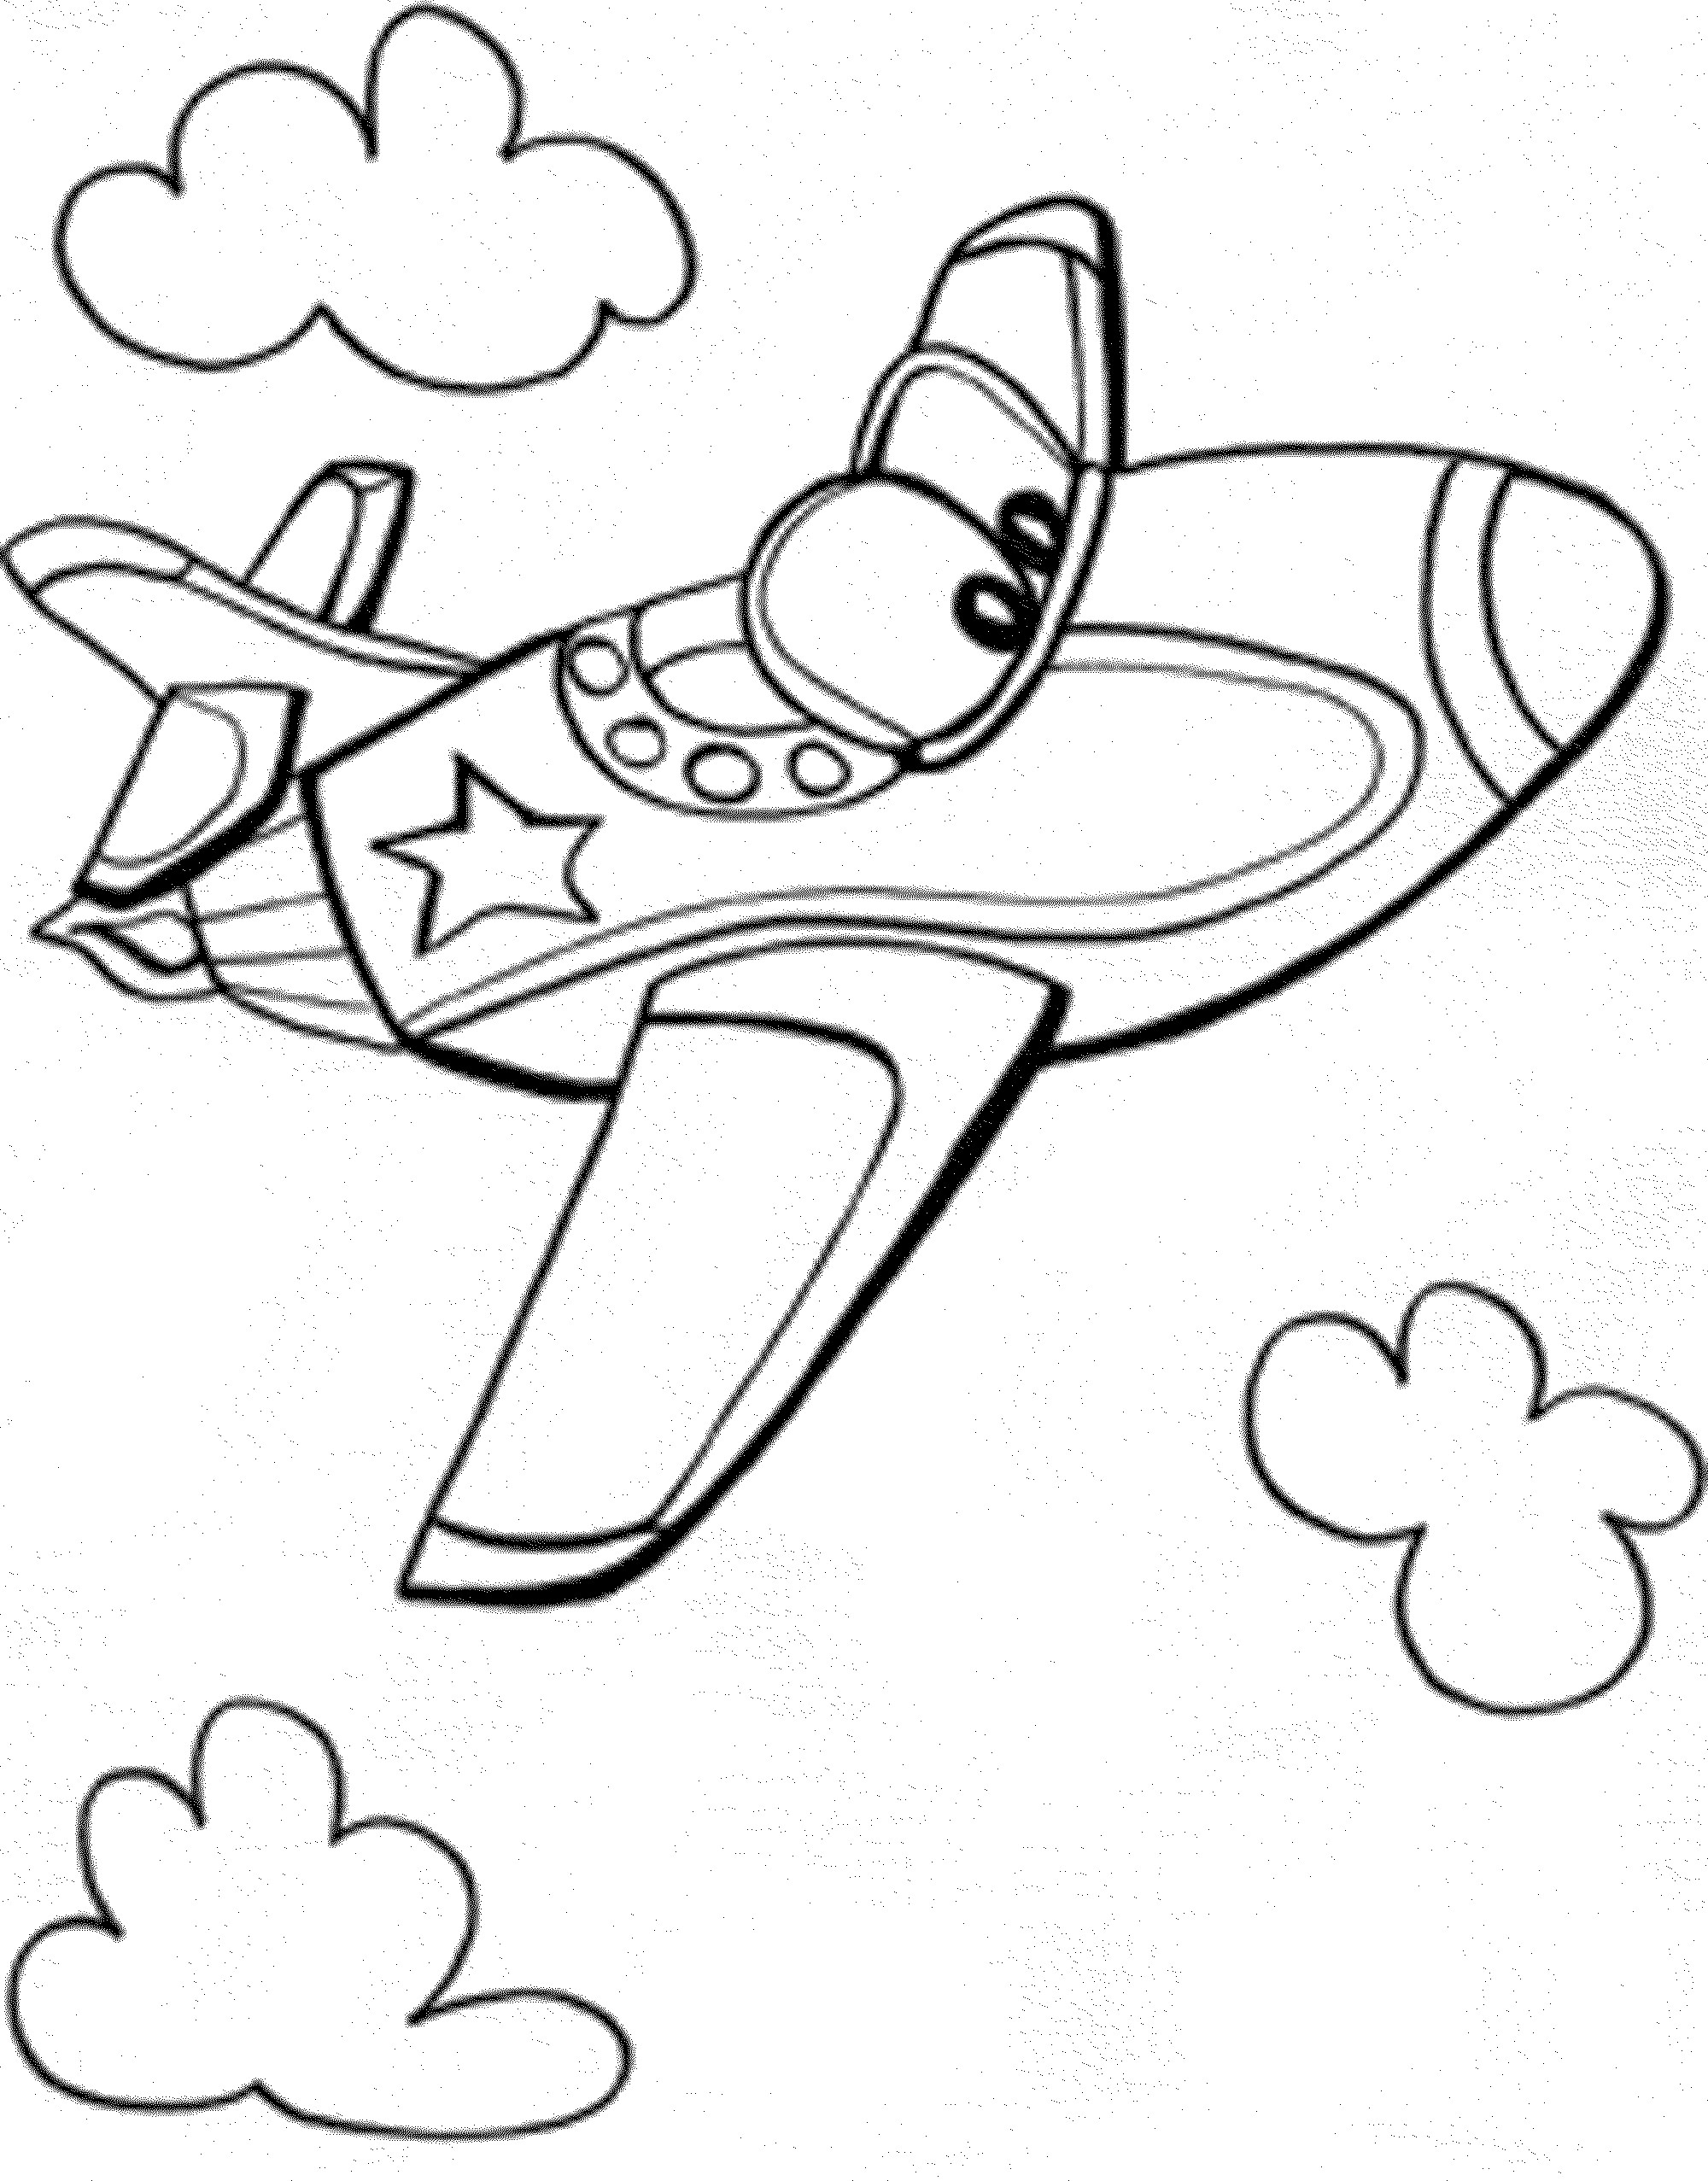 2000x2554 Fresh Coloring Pages Airplanes Preschool Fresh Airplane Coloring